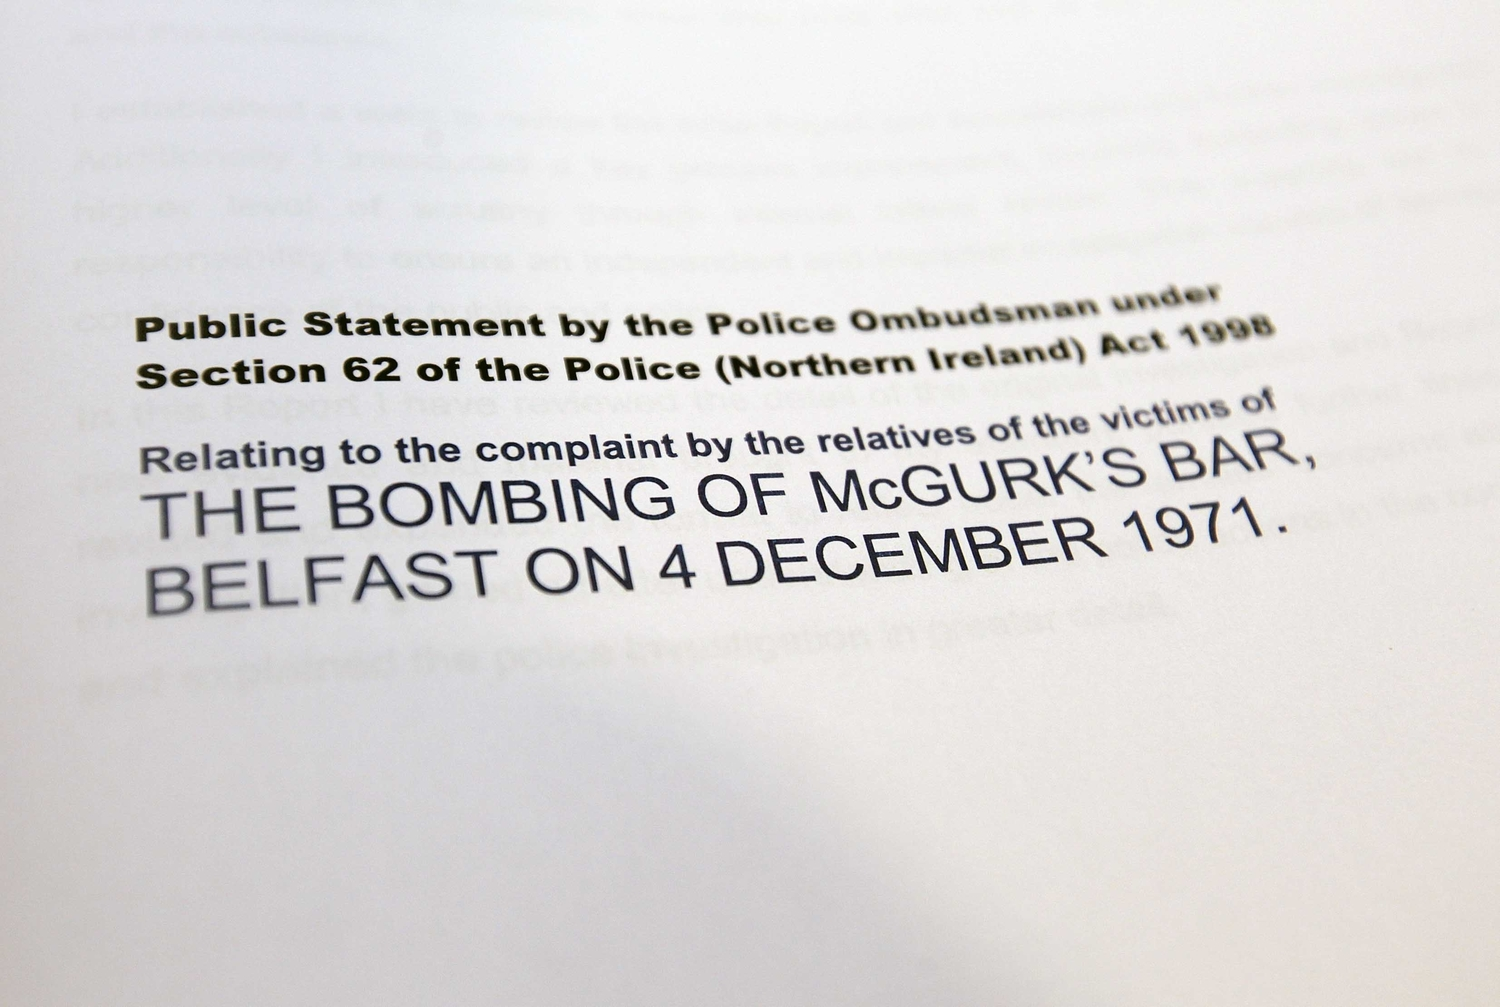 The ombudsman's McGurk's Bar report who's findings were altered on two occasions